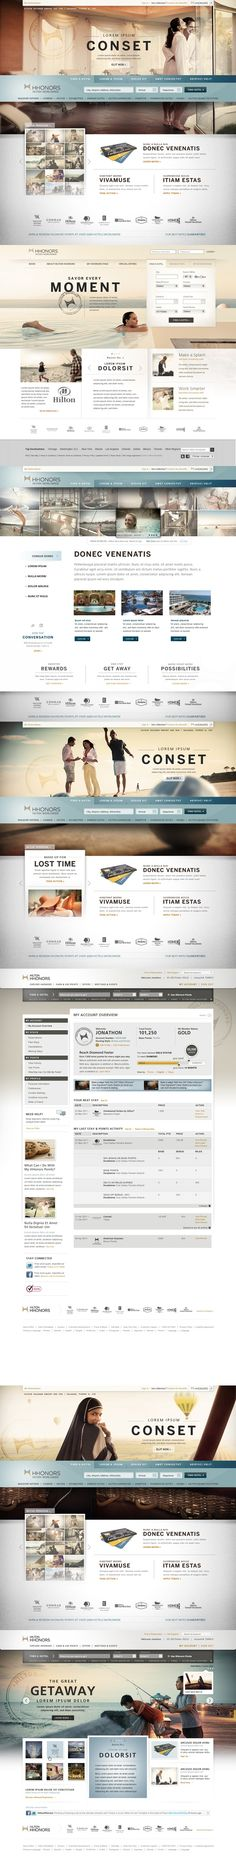 Hilton HHonors on Web Design Served